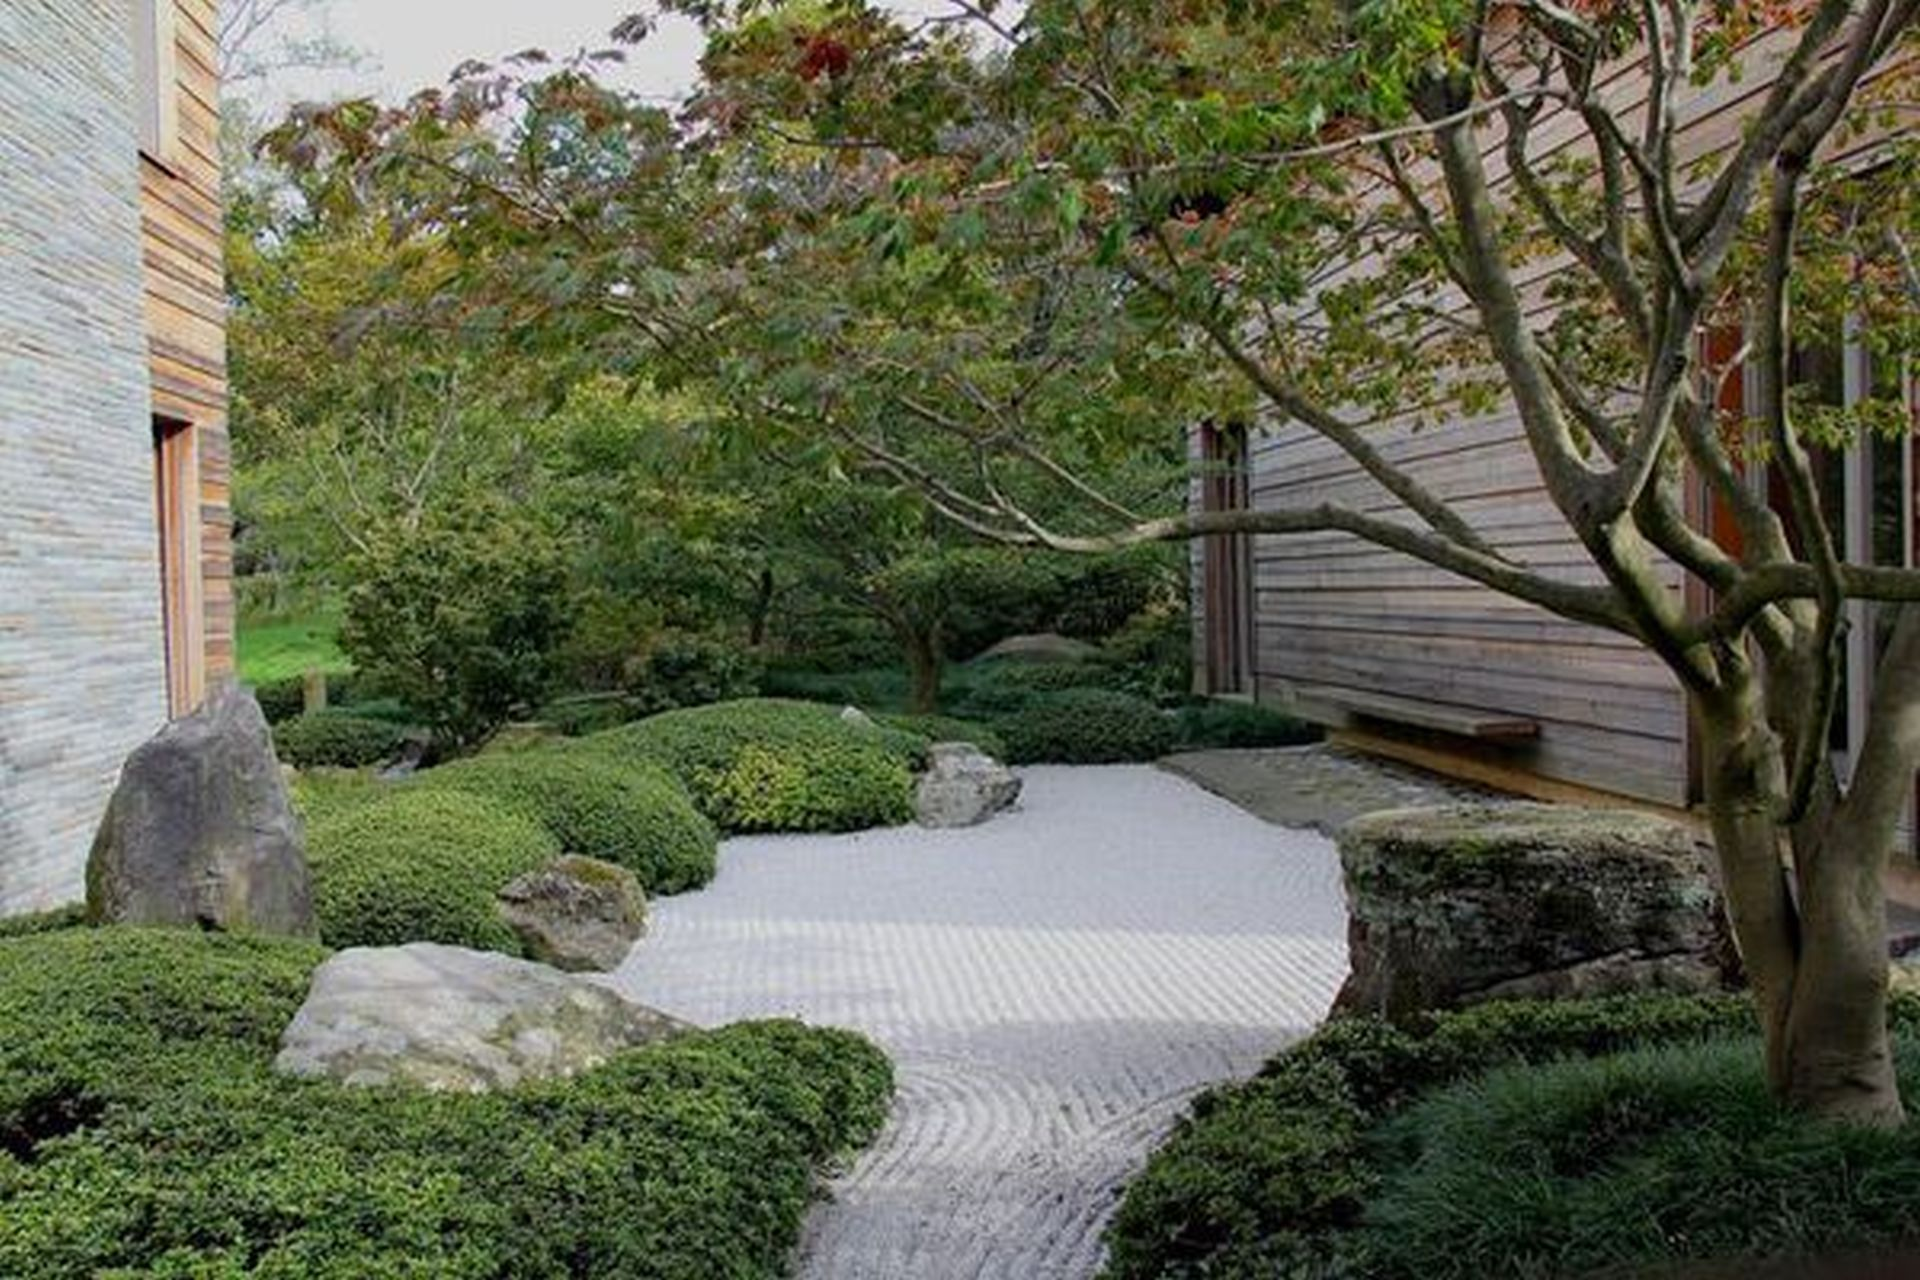 path surrounded by bushes and a couple of trees